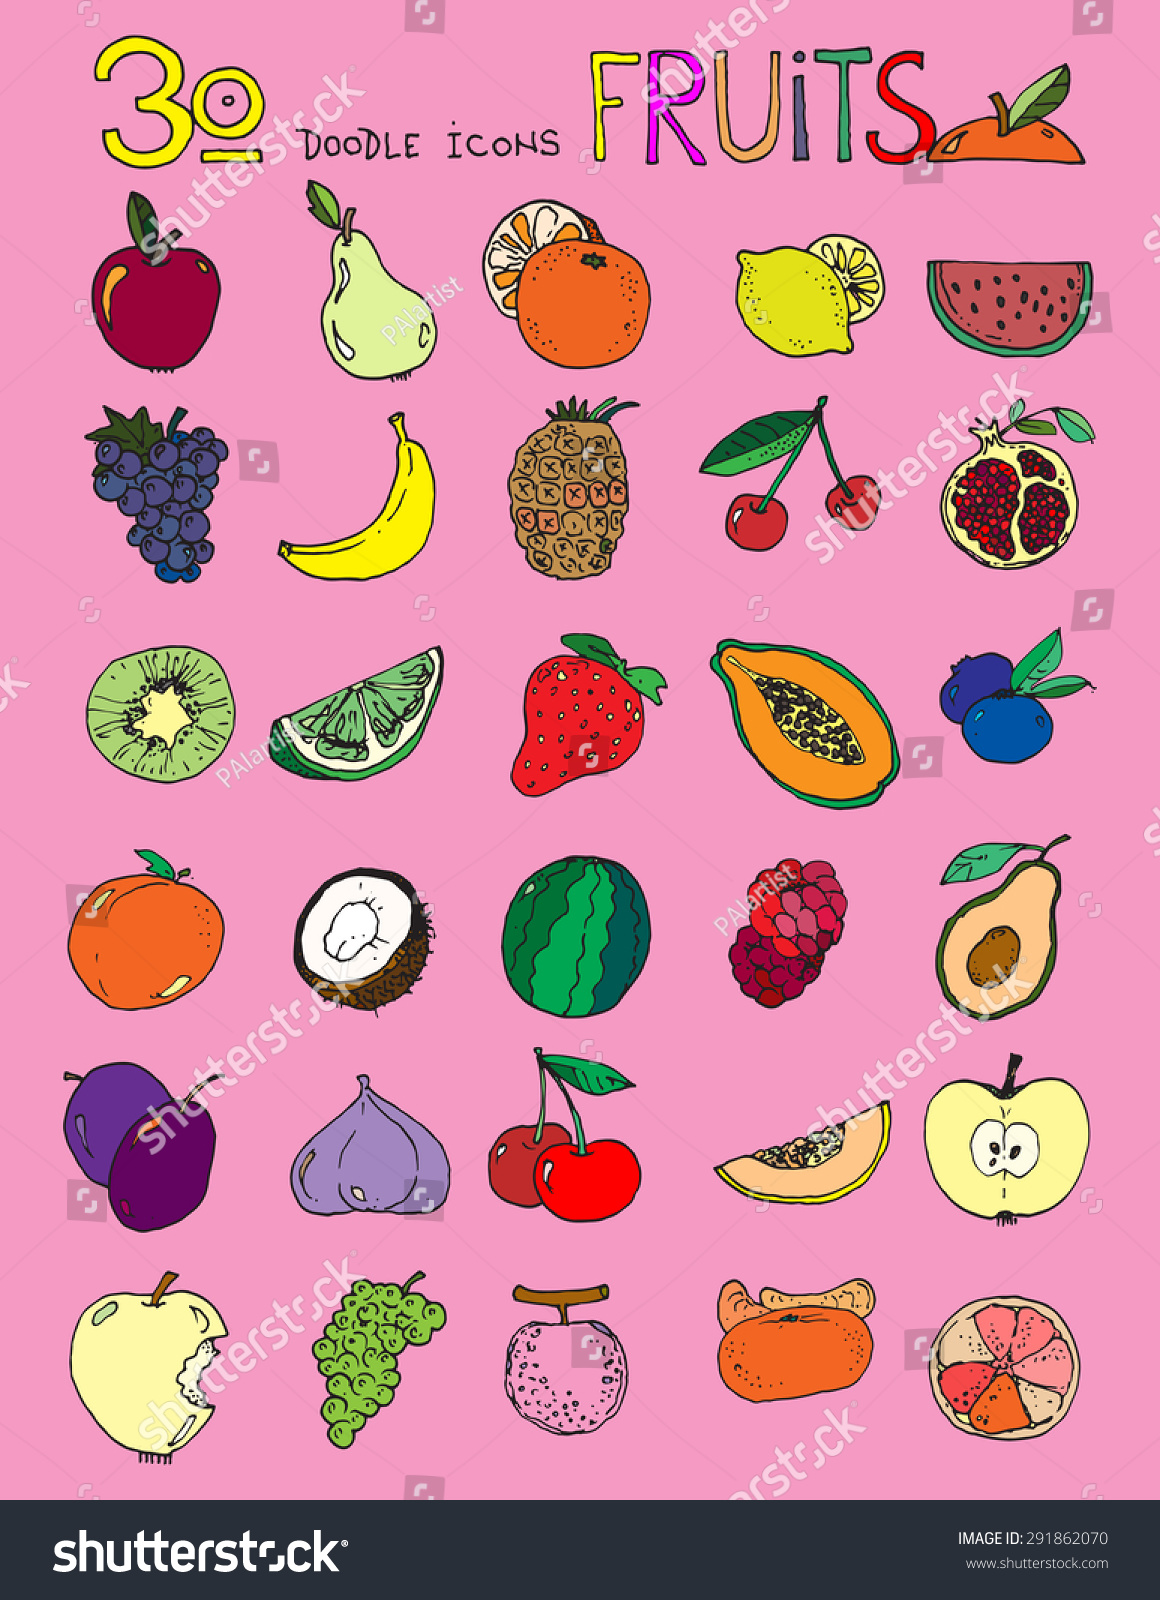 Drawingcolor Thirty Doodle Icons Fruits Simple Drawing Stock Illustration